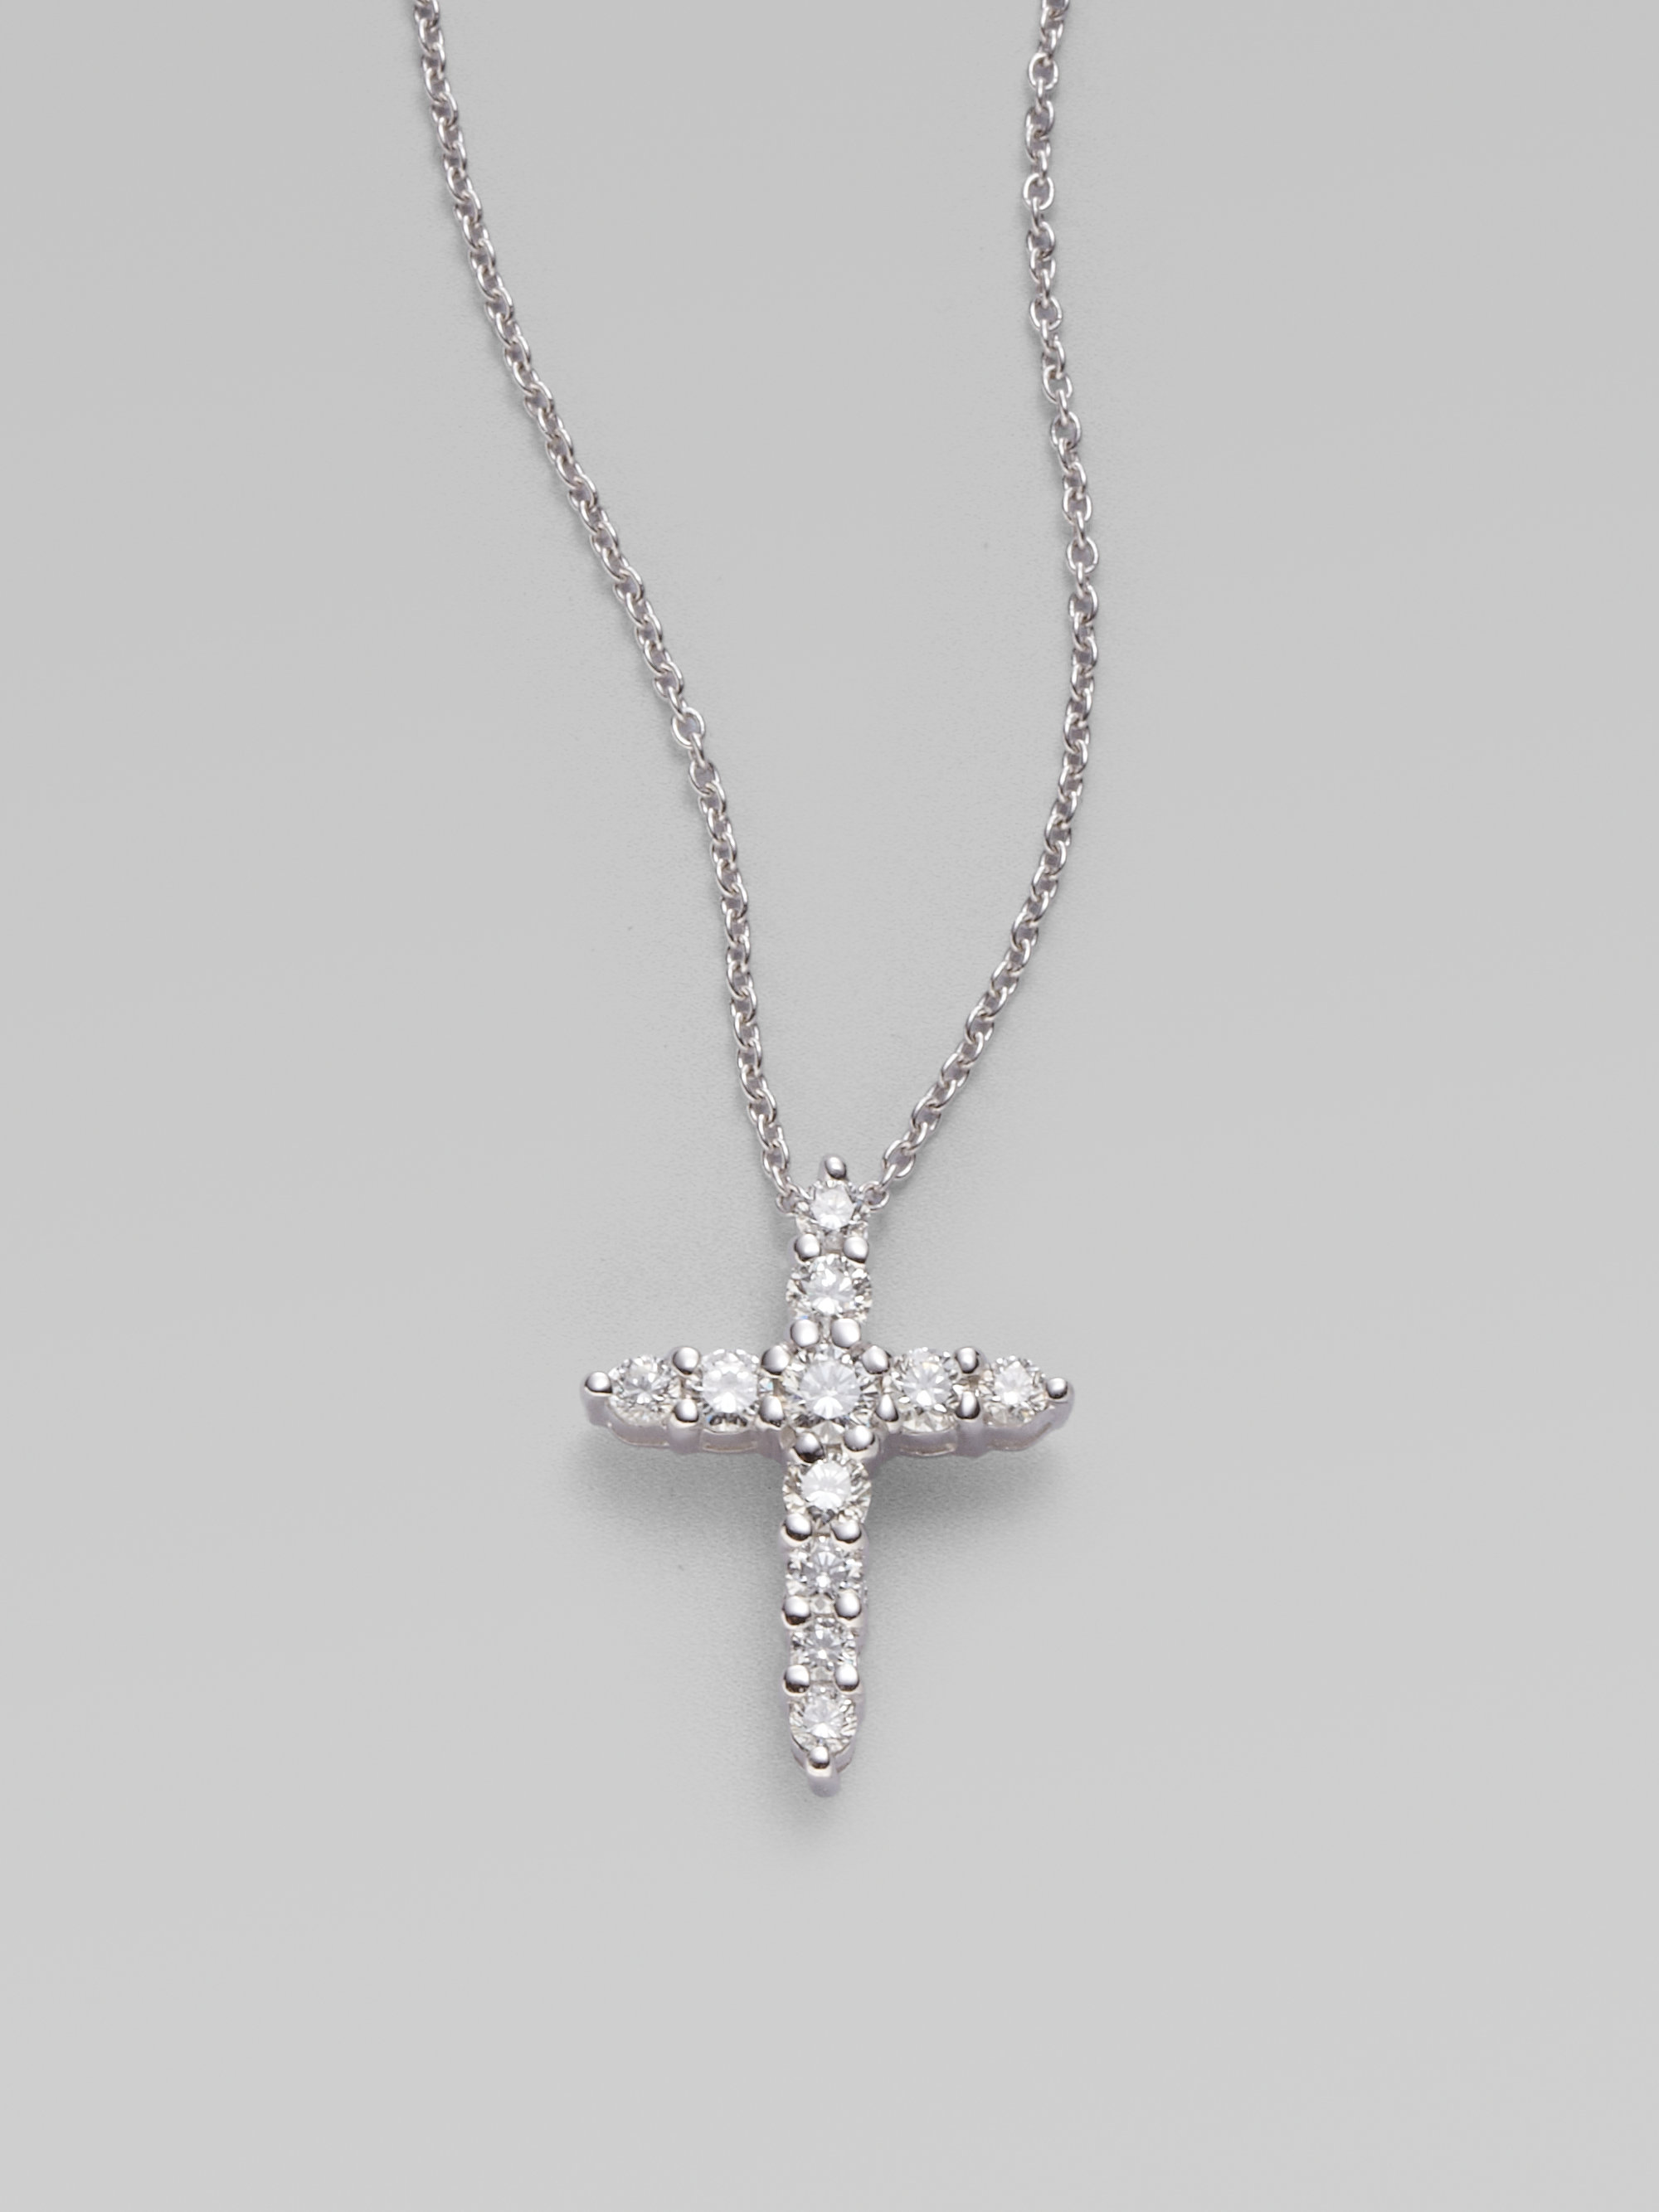 Lyst roberto coin 18k white gold diamond cross pendant in white gallery aloadofball Image collections